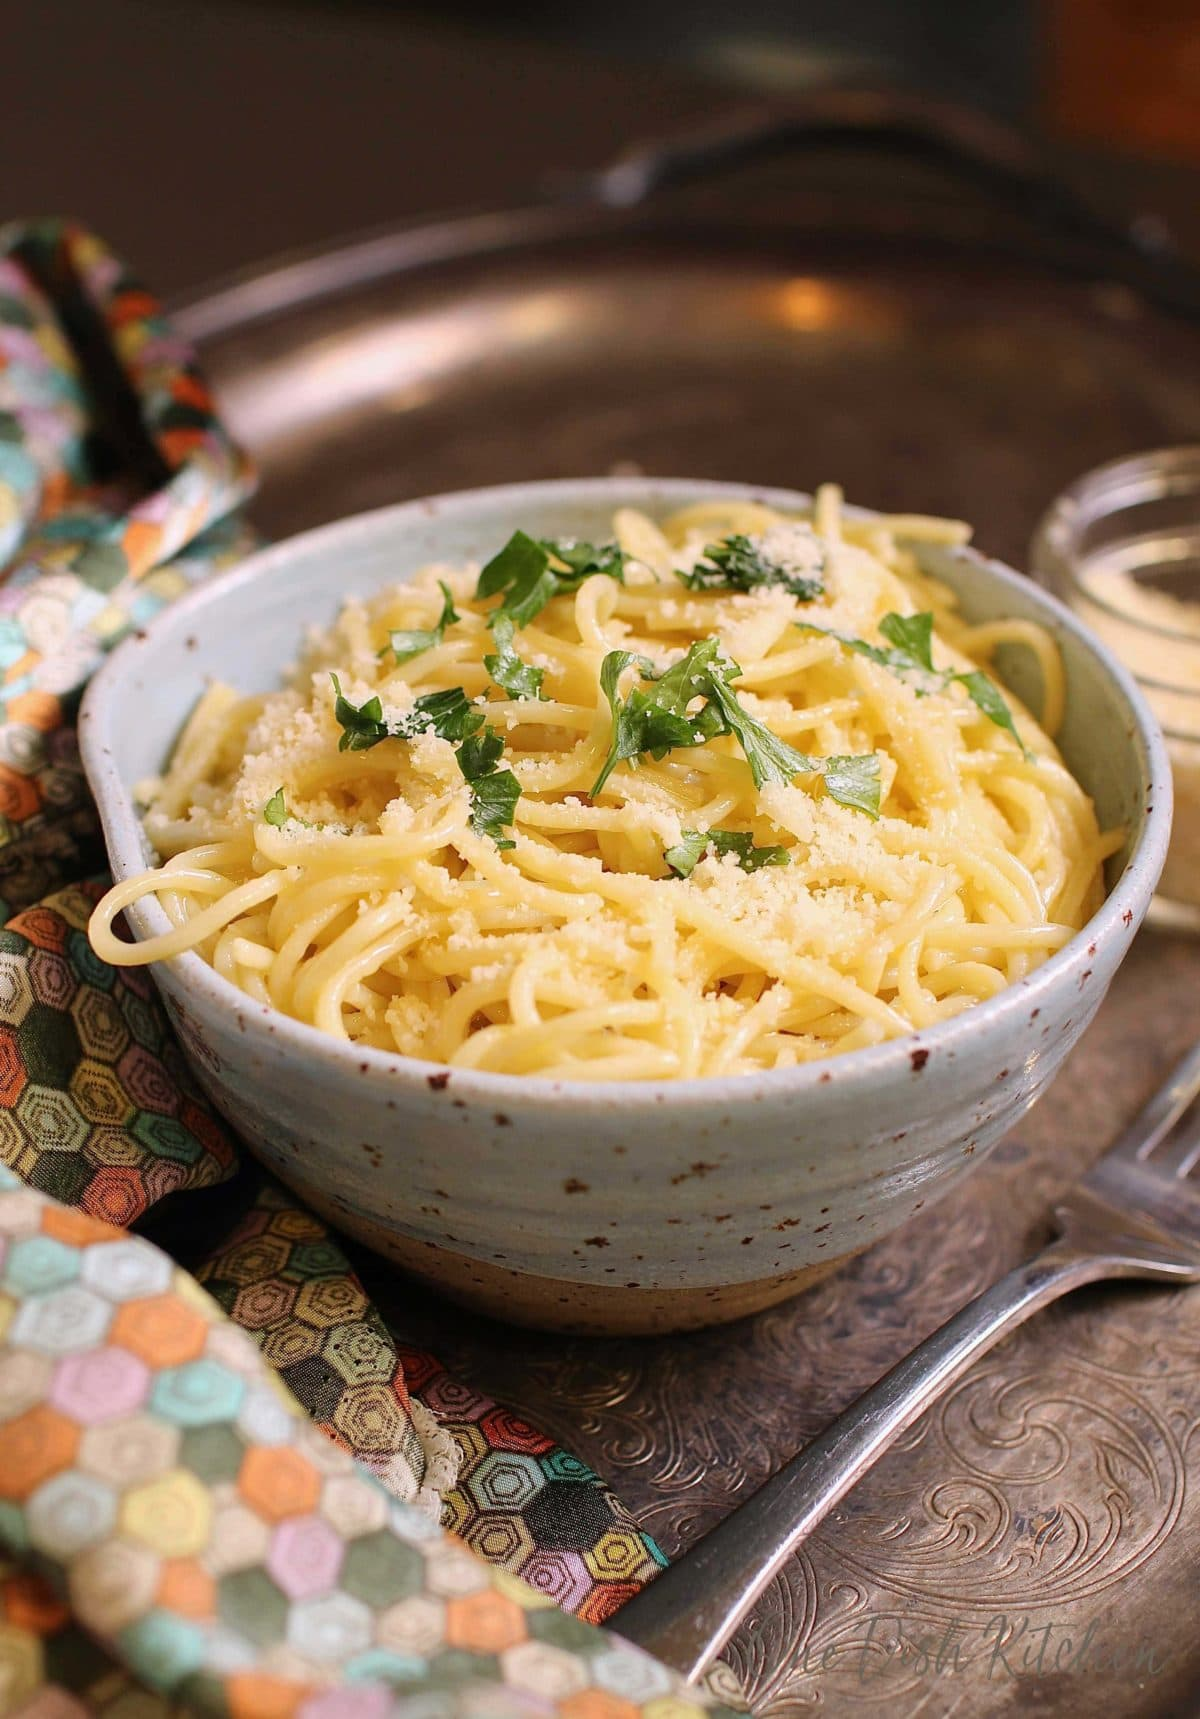 Spaghetti noodles topped with parmesan cheese and chopped parsley in a bowl next to a fork on a metal tray